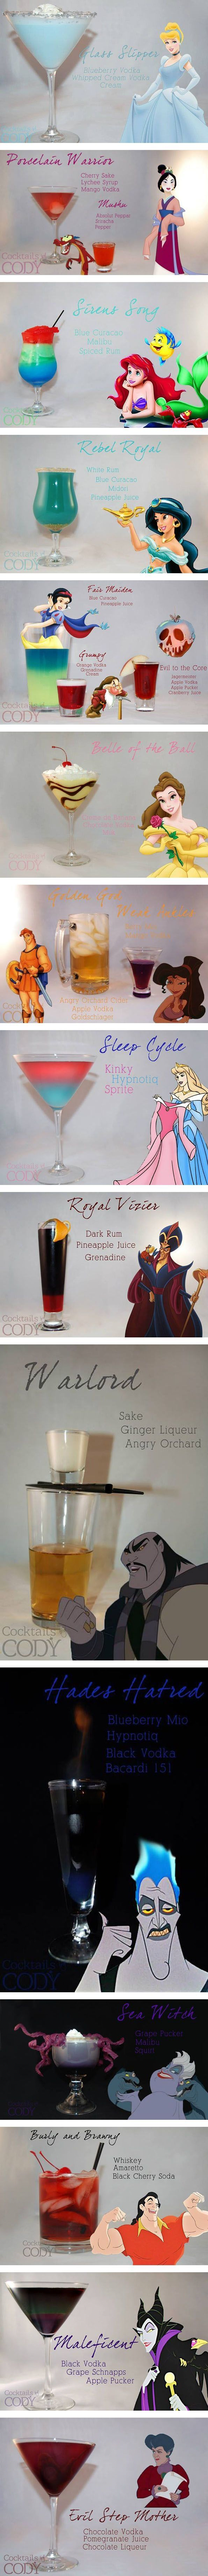 Disney Cocktails disney cocktail recipe recipes ingredients instructions drink recipes